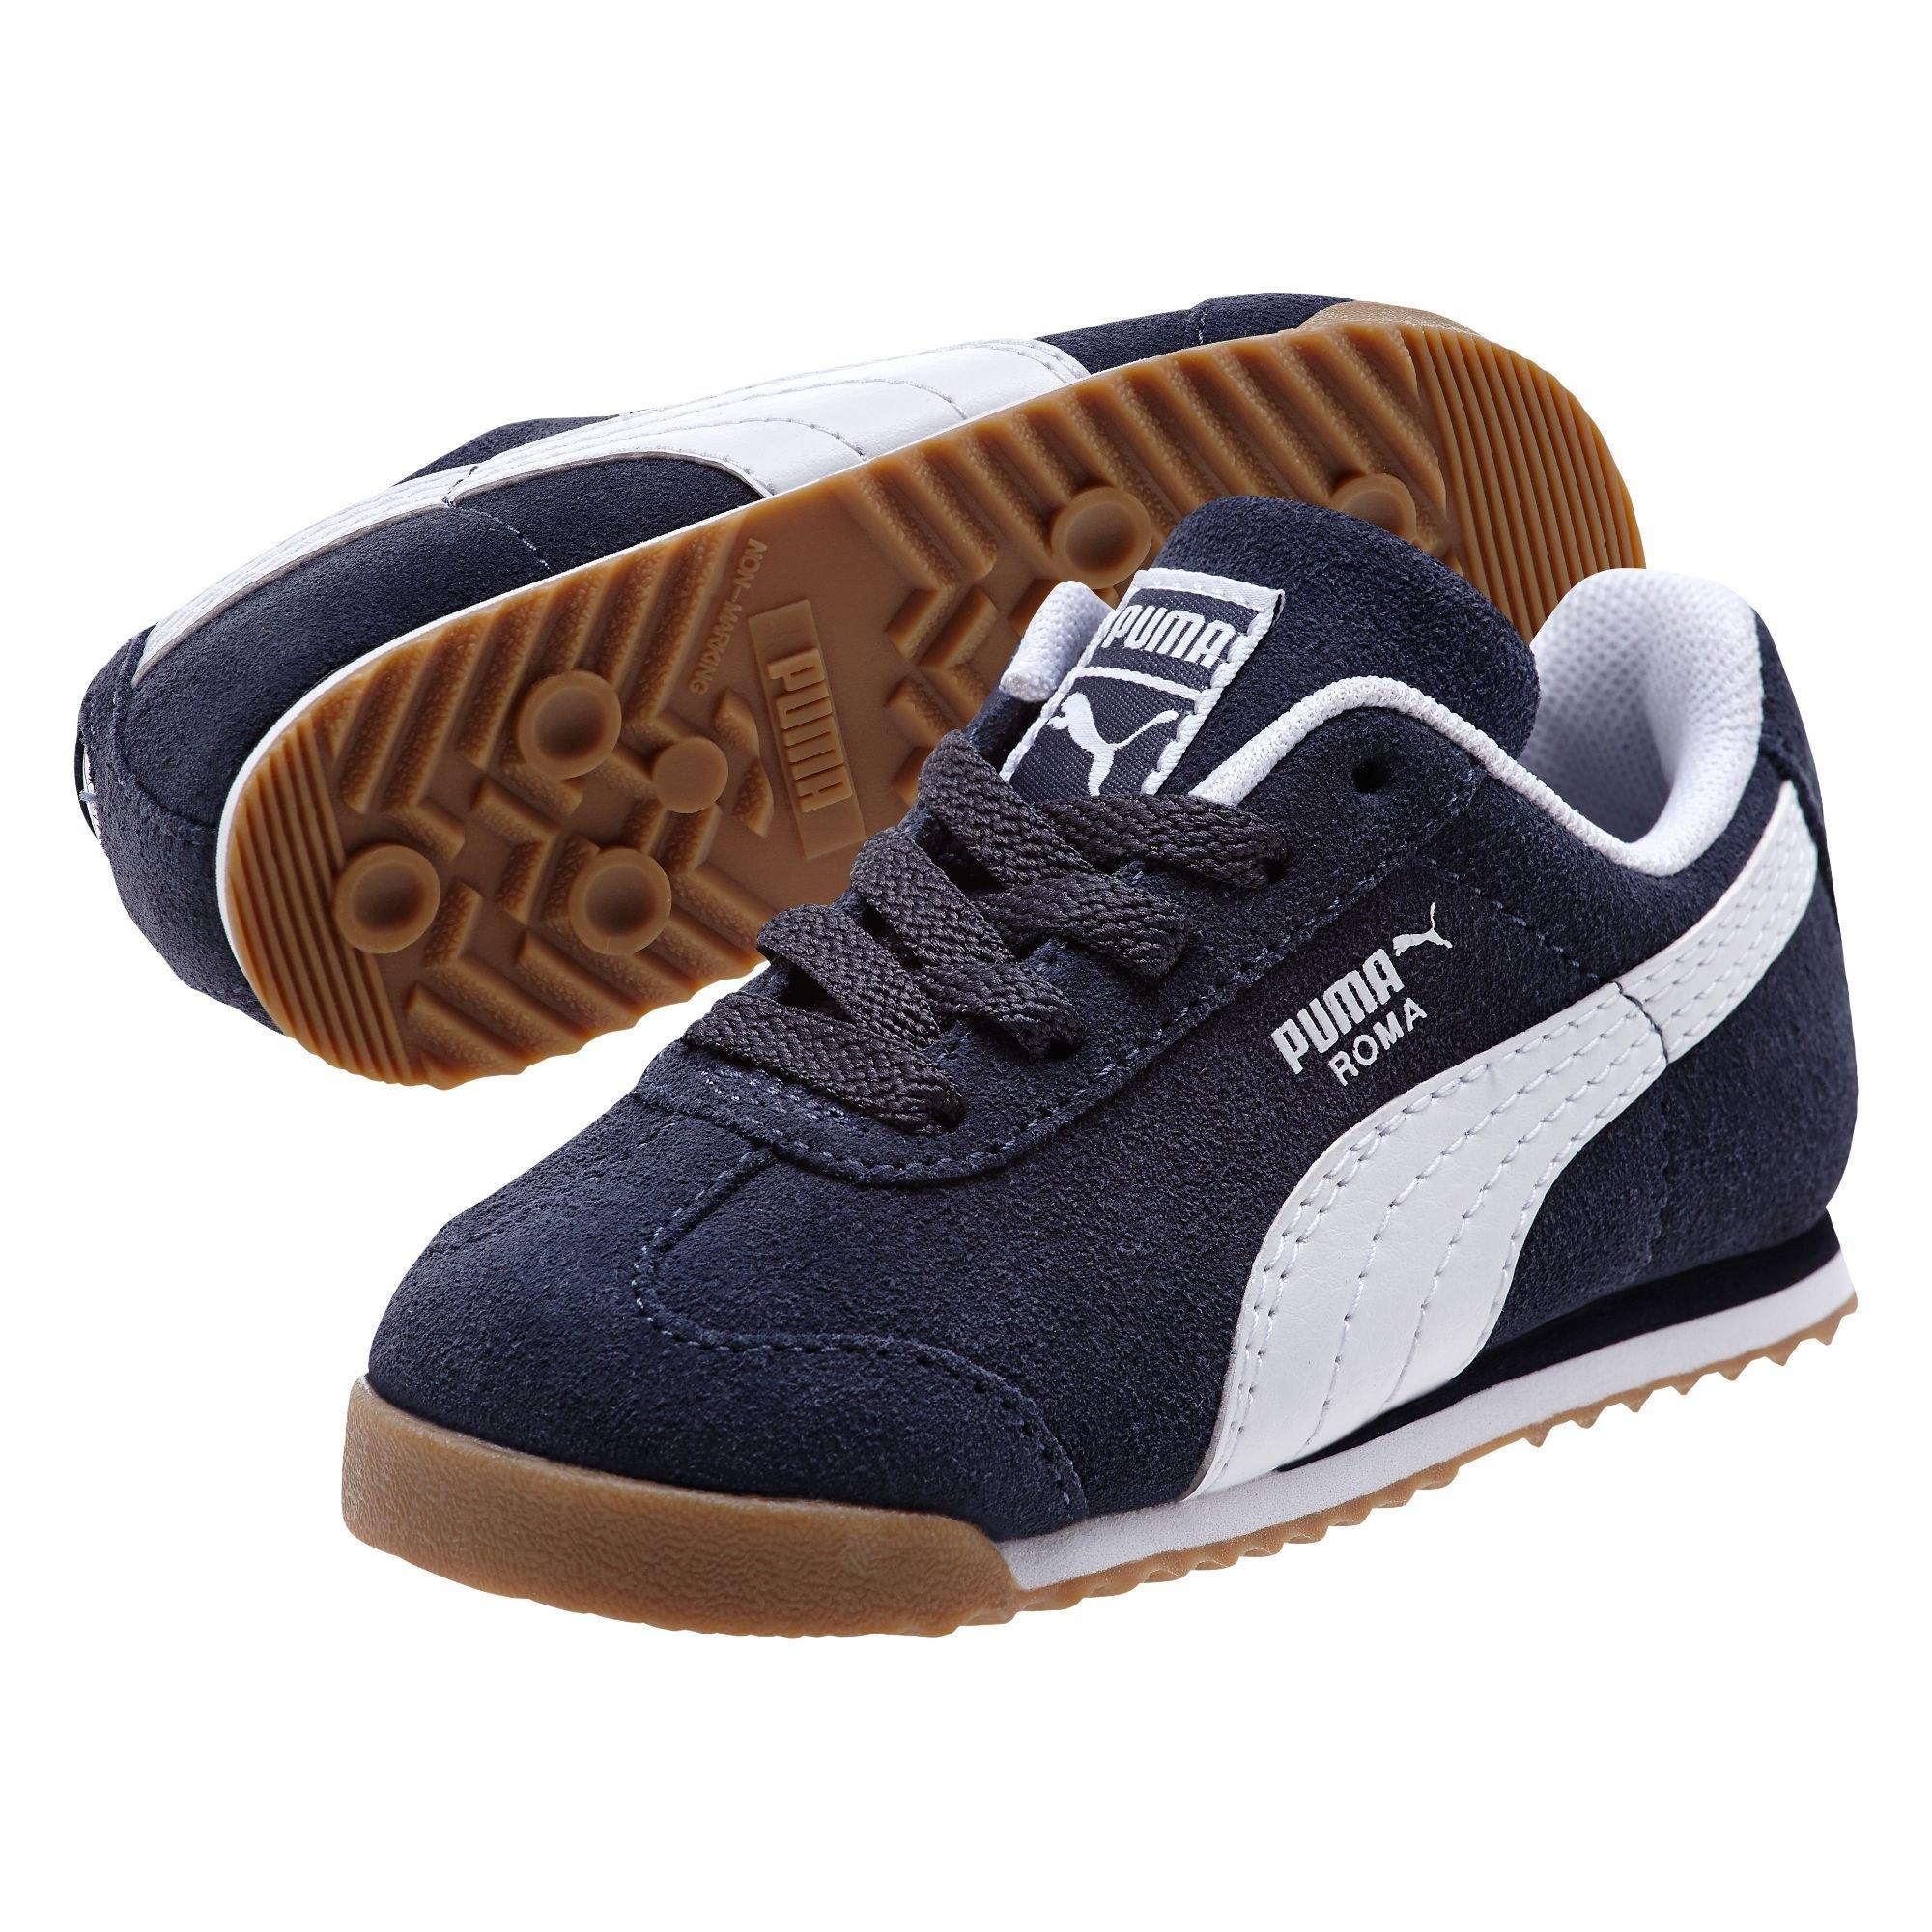 puma roma shoes. puma roma suede toddler boys\u0027 casual shoe - main container image 1 shoes b